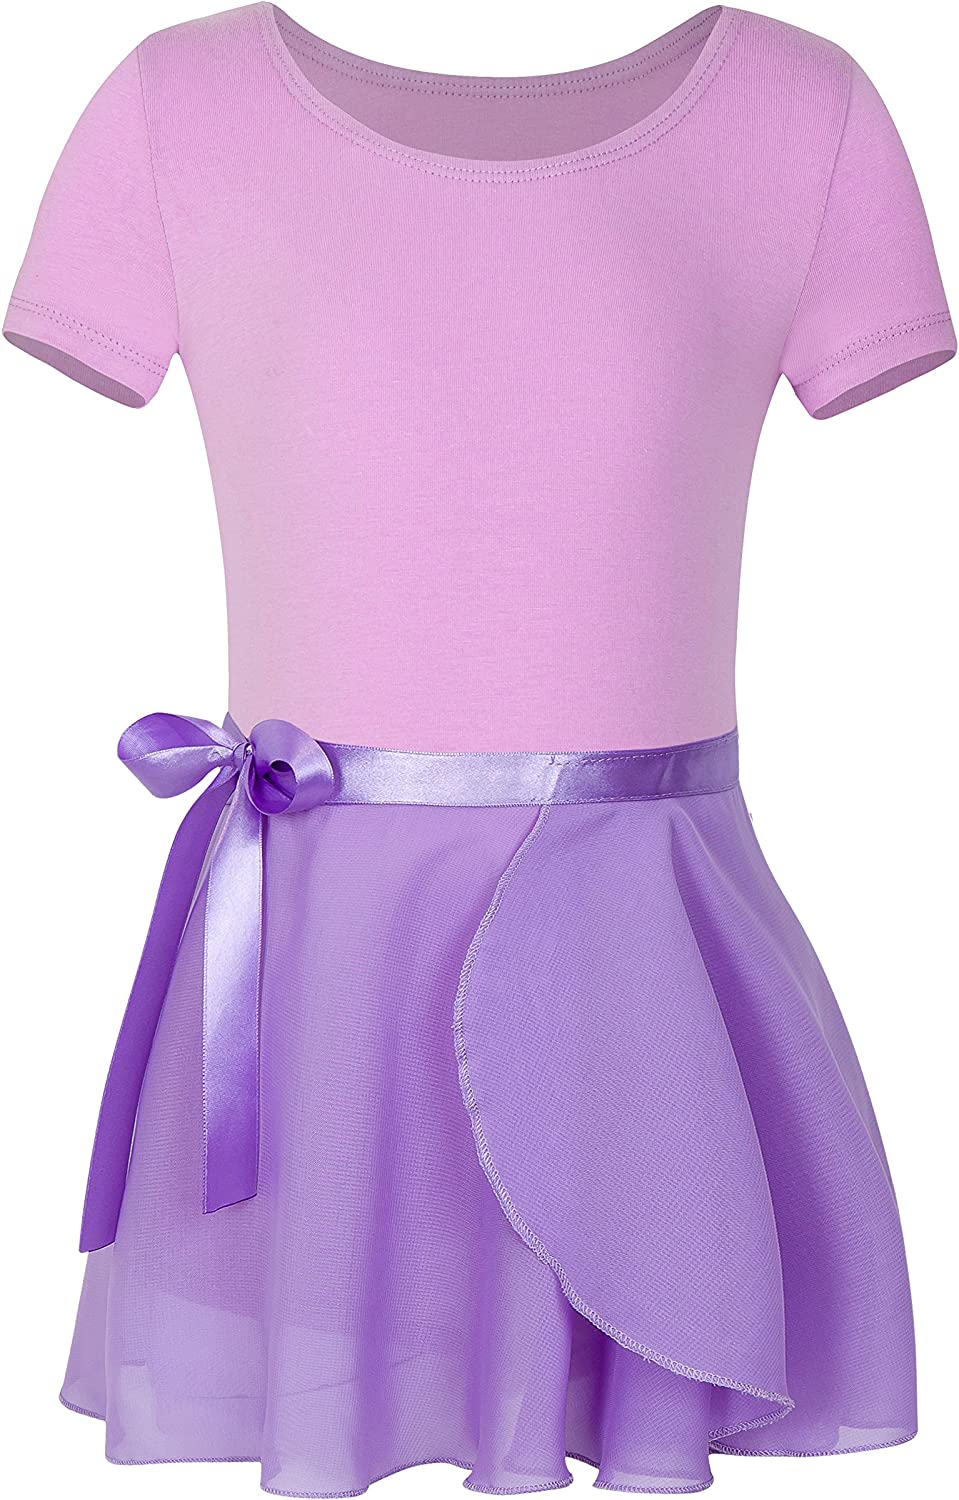 YEEIC Girls Short Sleeve Wrap-Round Skirt Leotard Dress